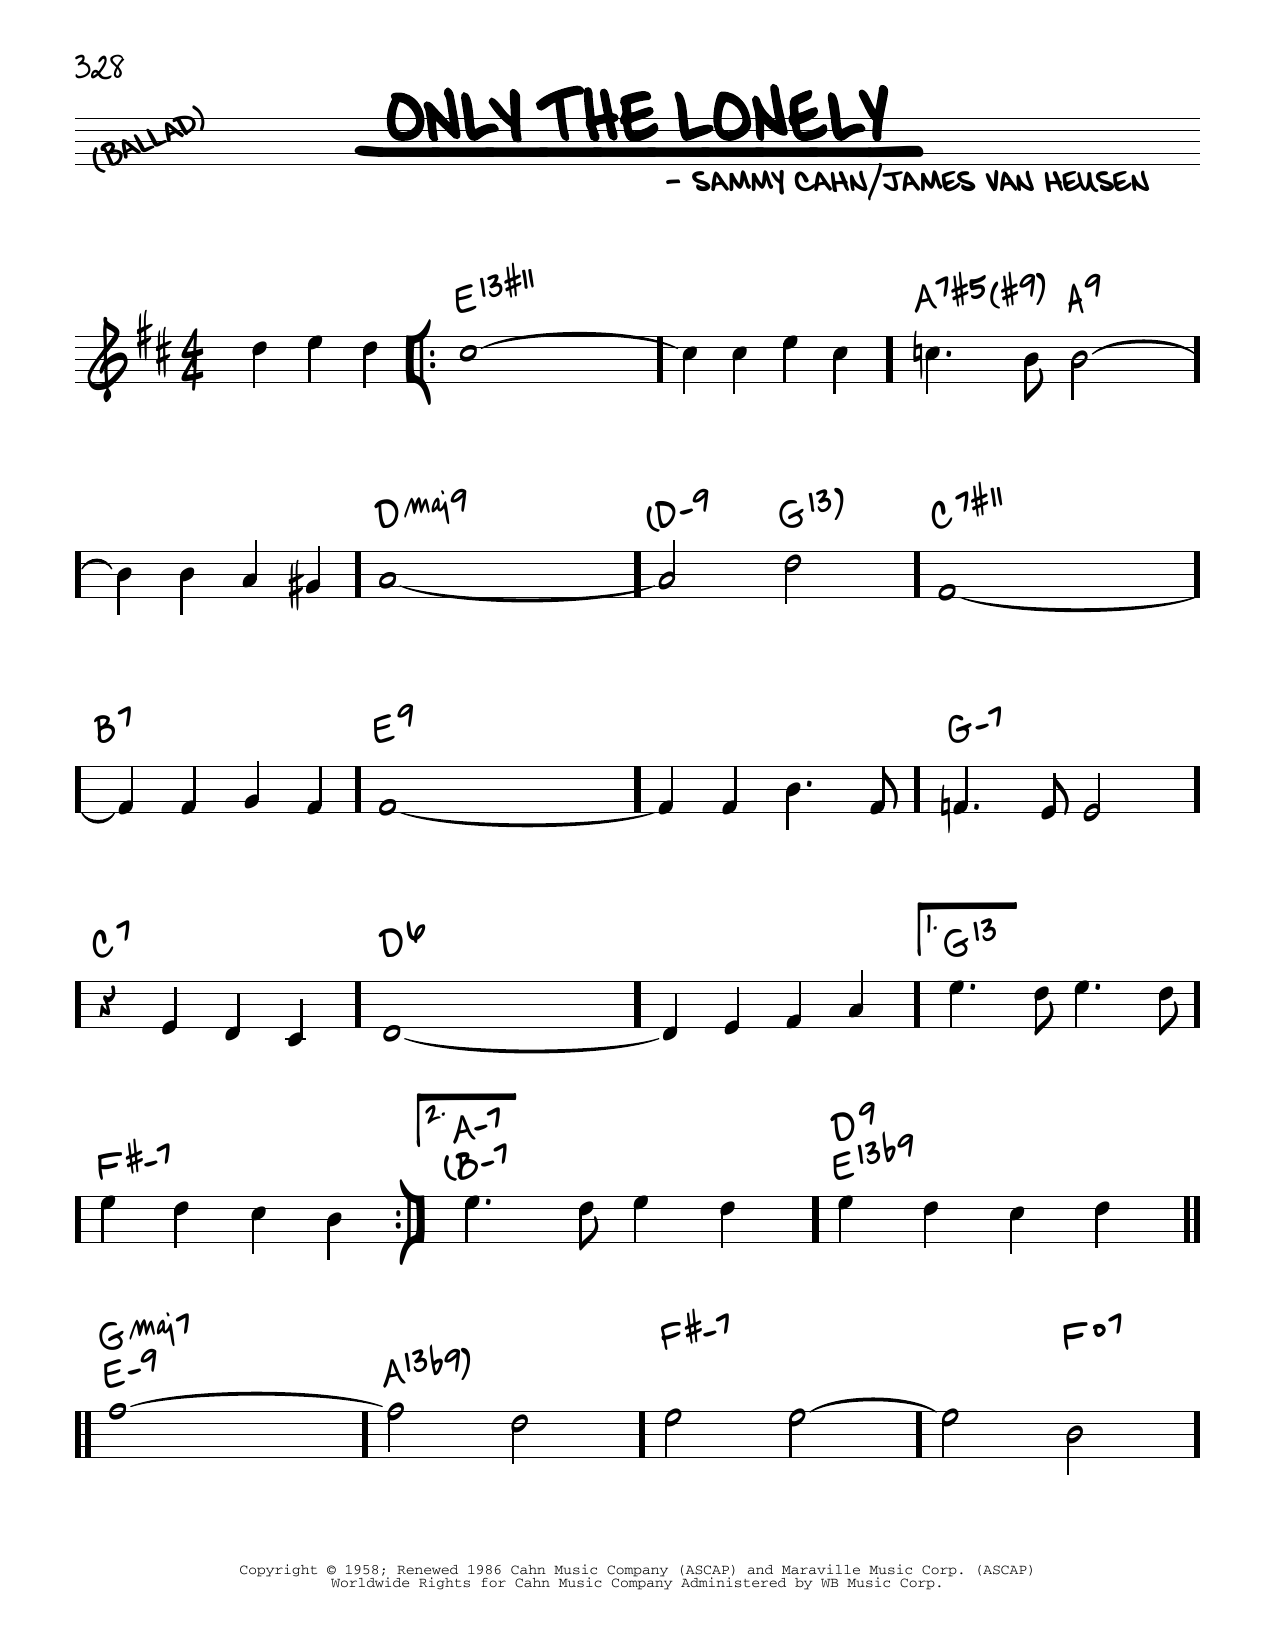 James Van Heusen and Sammy Cahn Only The Lonely sheet music notes and chords. Download Printable PDF.